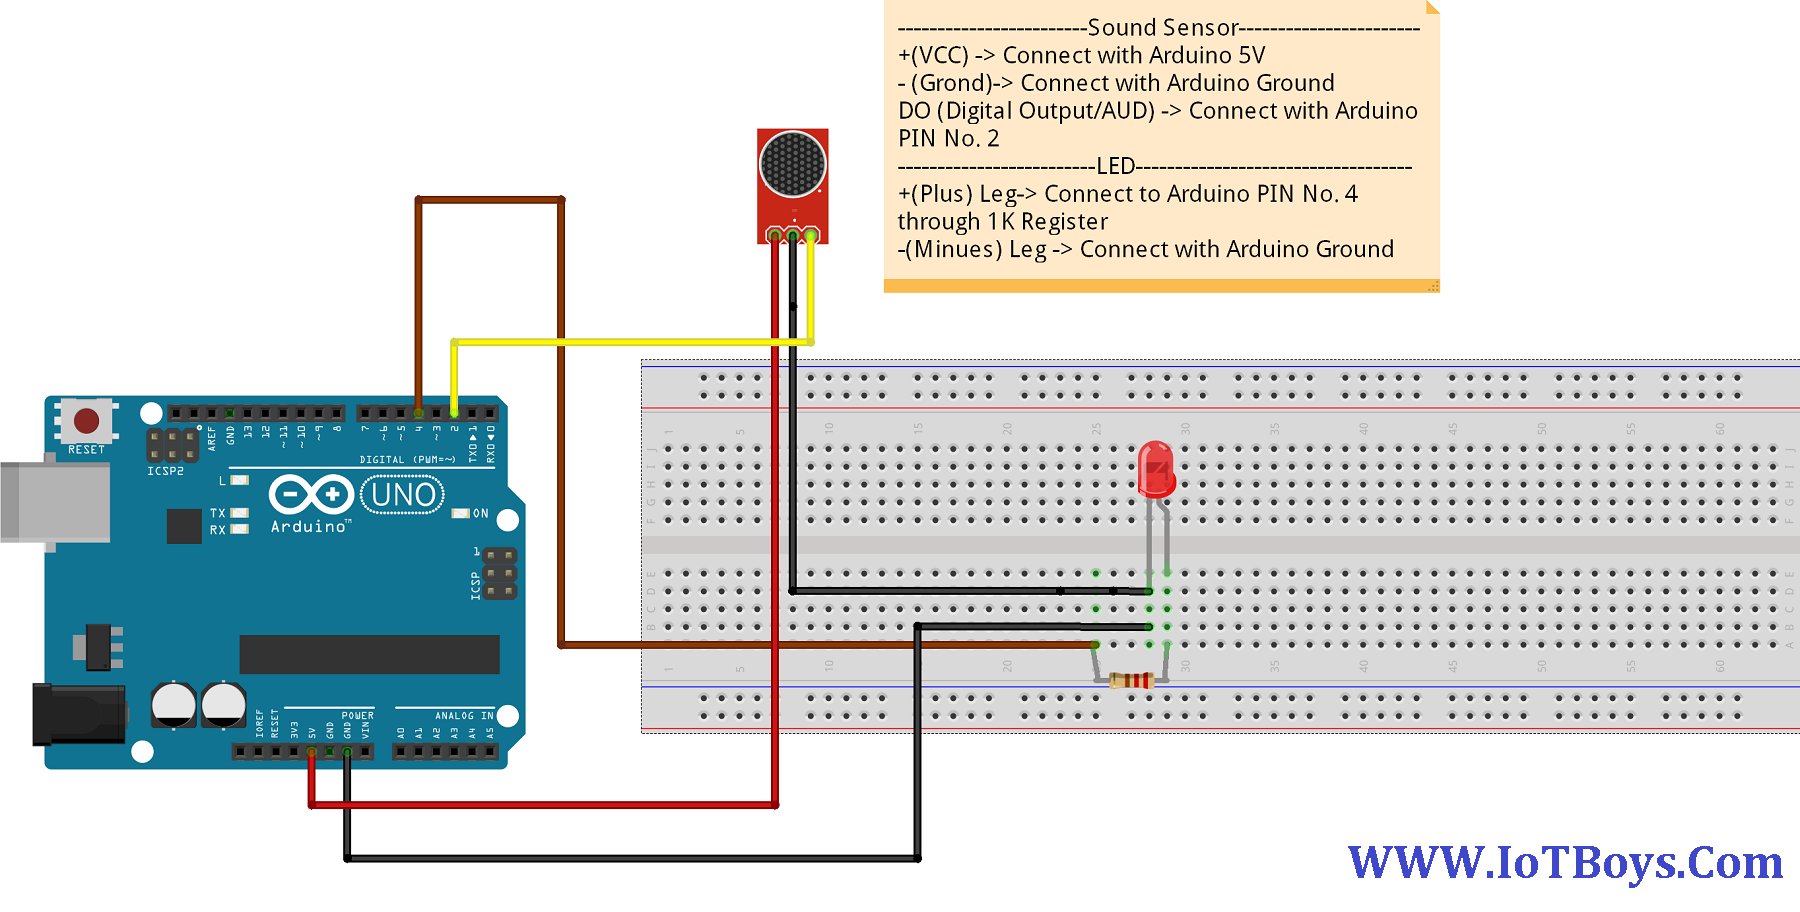 Control LED By Clap Using Arduino and Sound Sensor ...